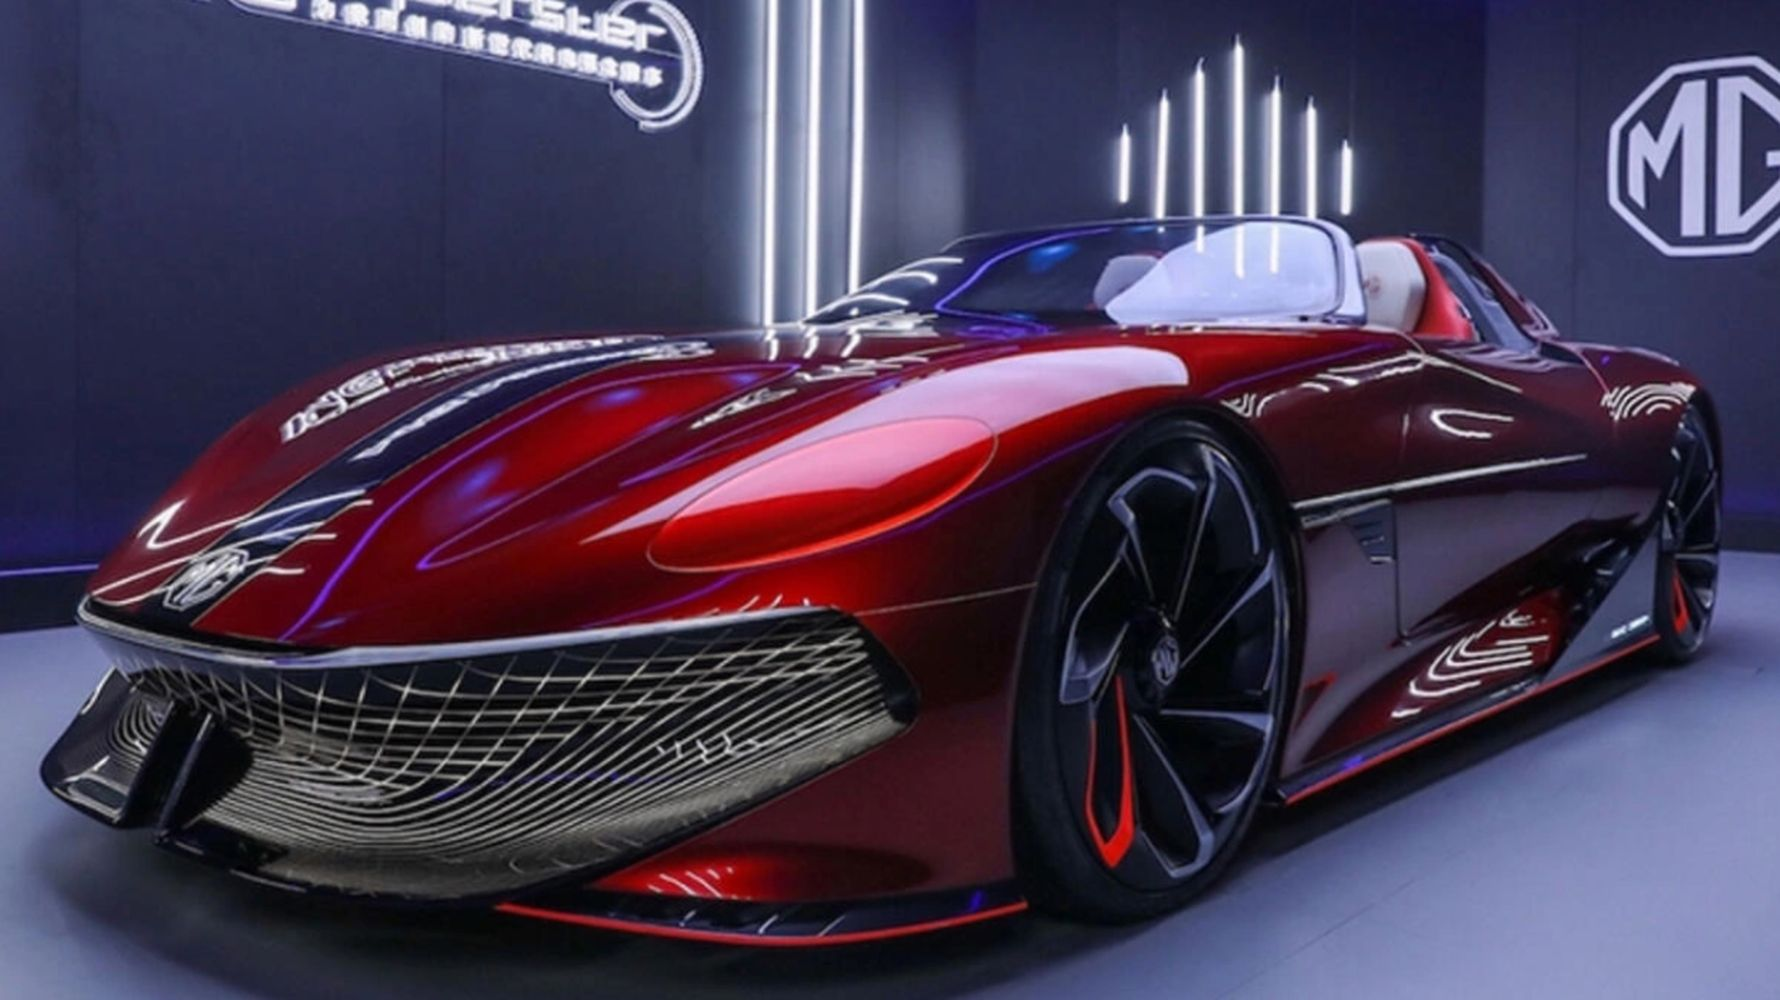 mg cyberster concept car covers kilometers with a single charge